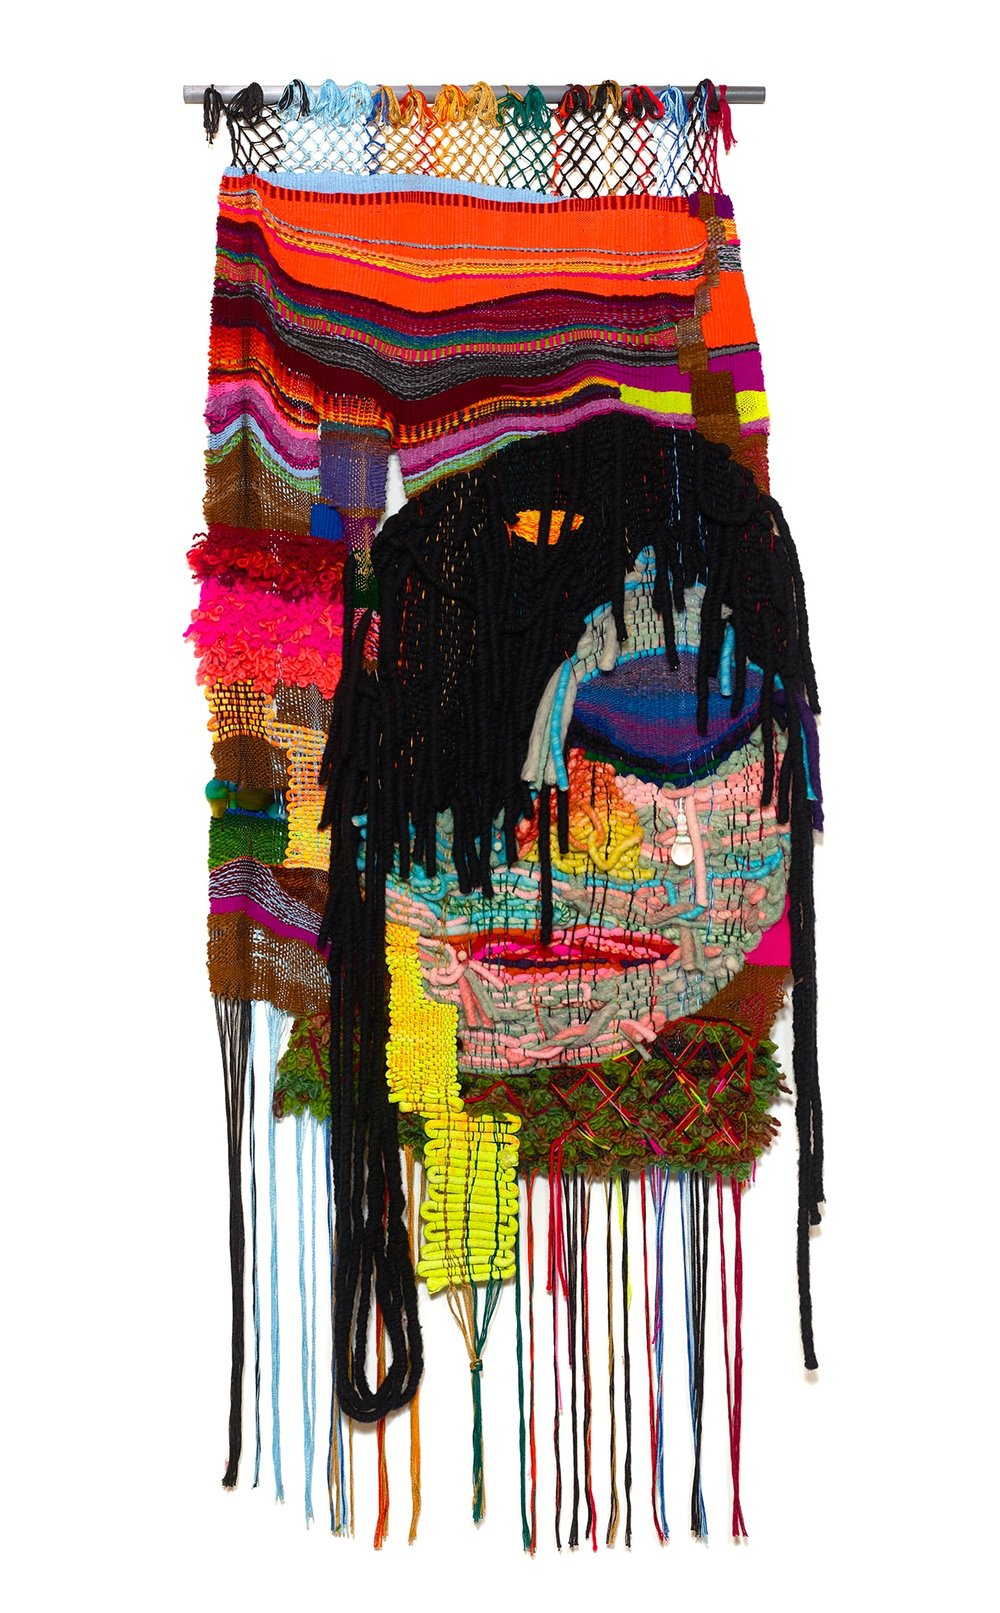 Terri Friedman Hard & Weird & Sad, 2016, 90 x 37, acrylic and wool fibers, blown glass tear, $12,000